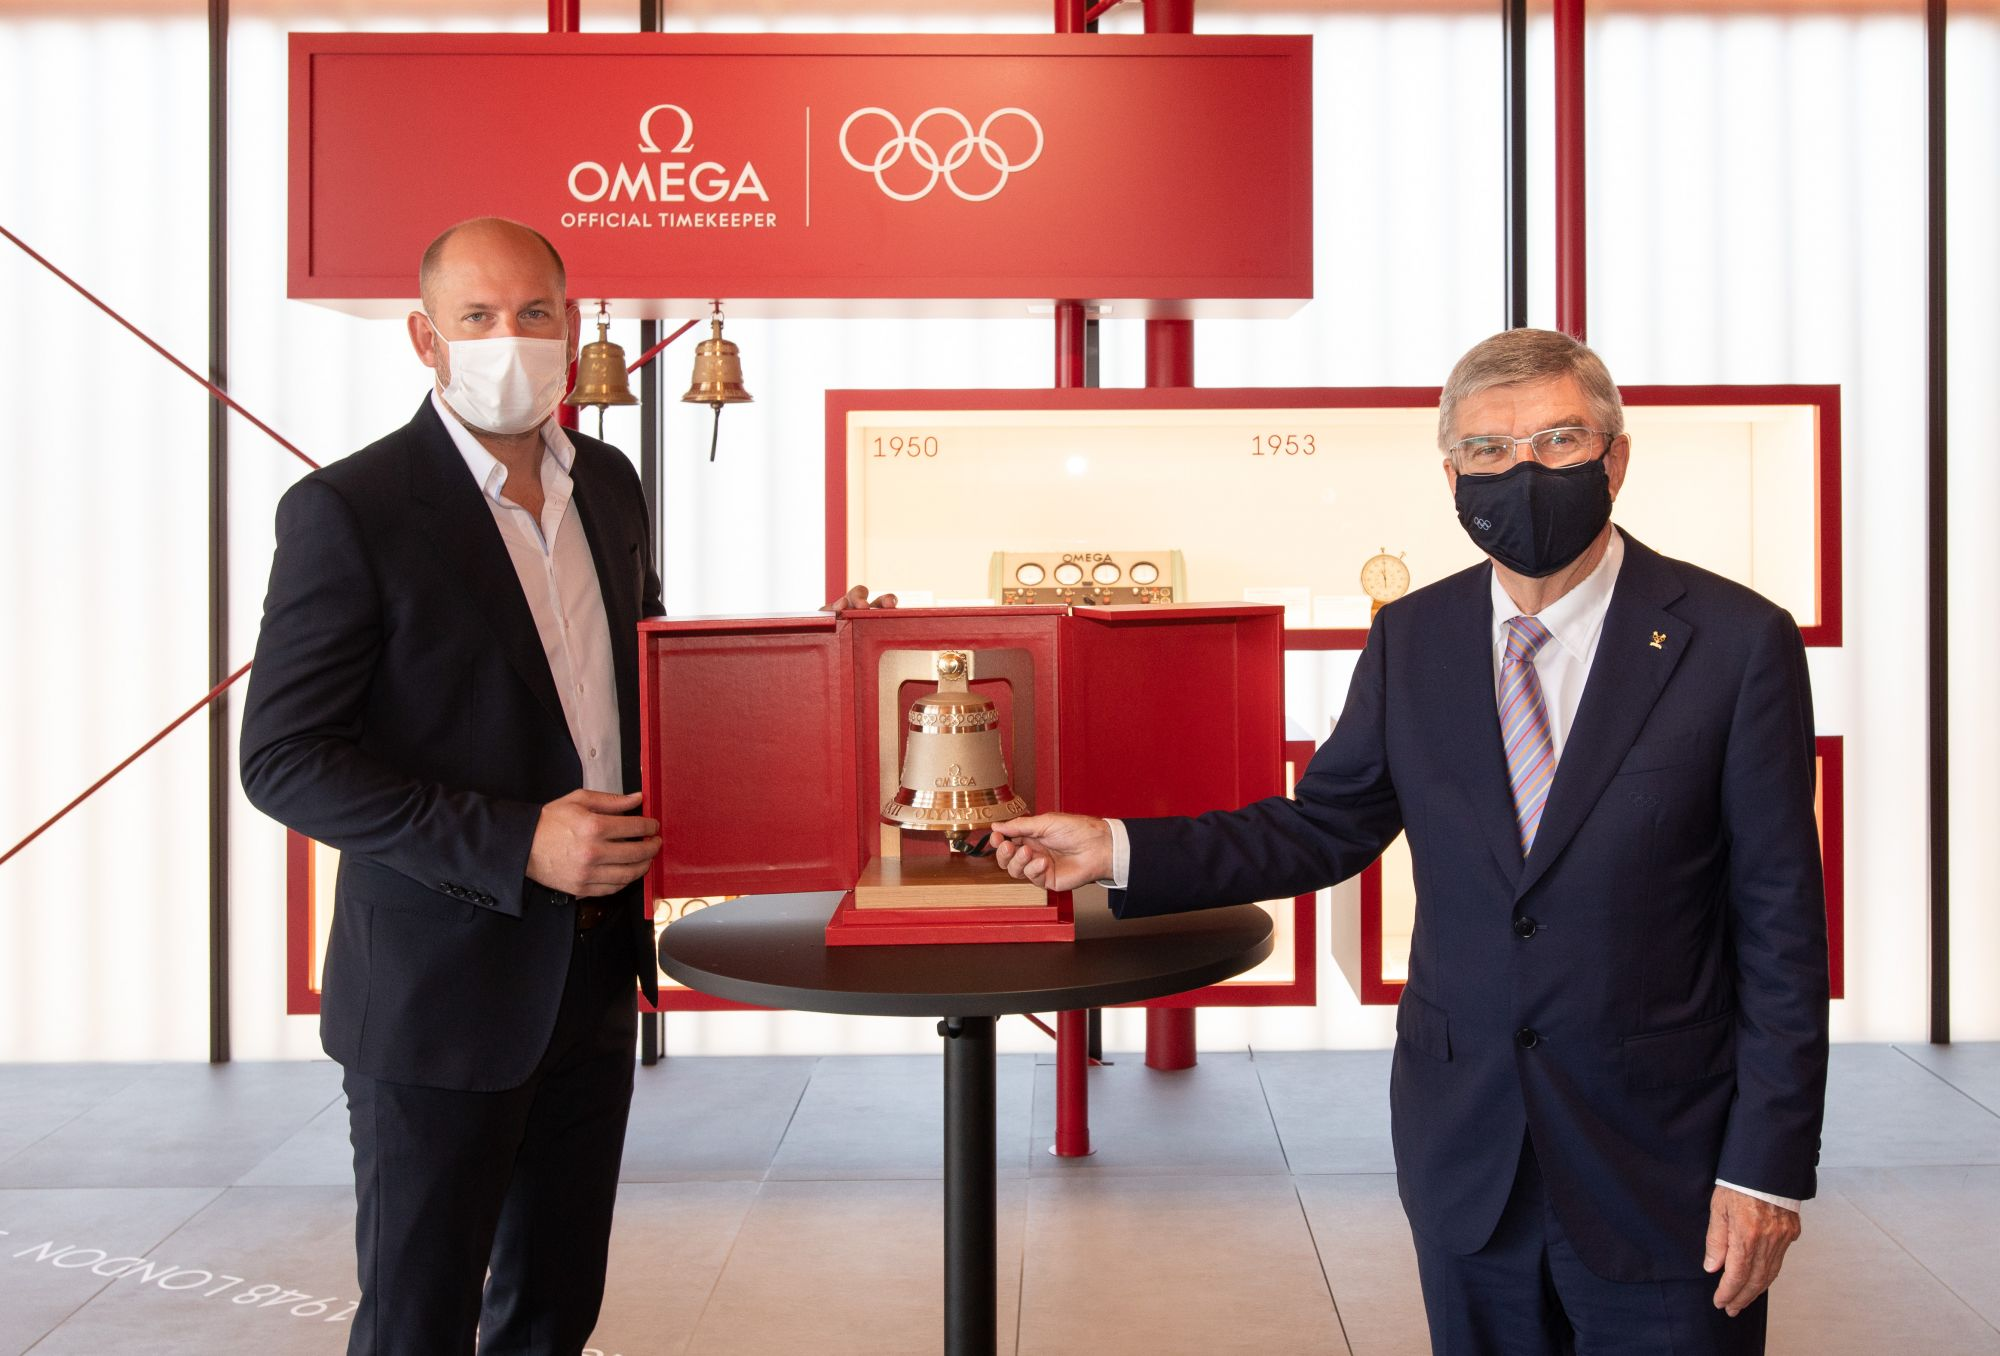 Tokyo 2020 Olympics: Omega Returns as Official Timekeeper